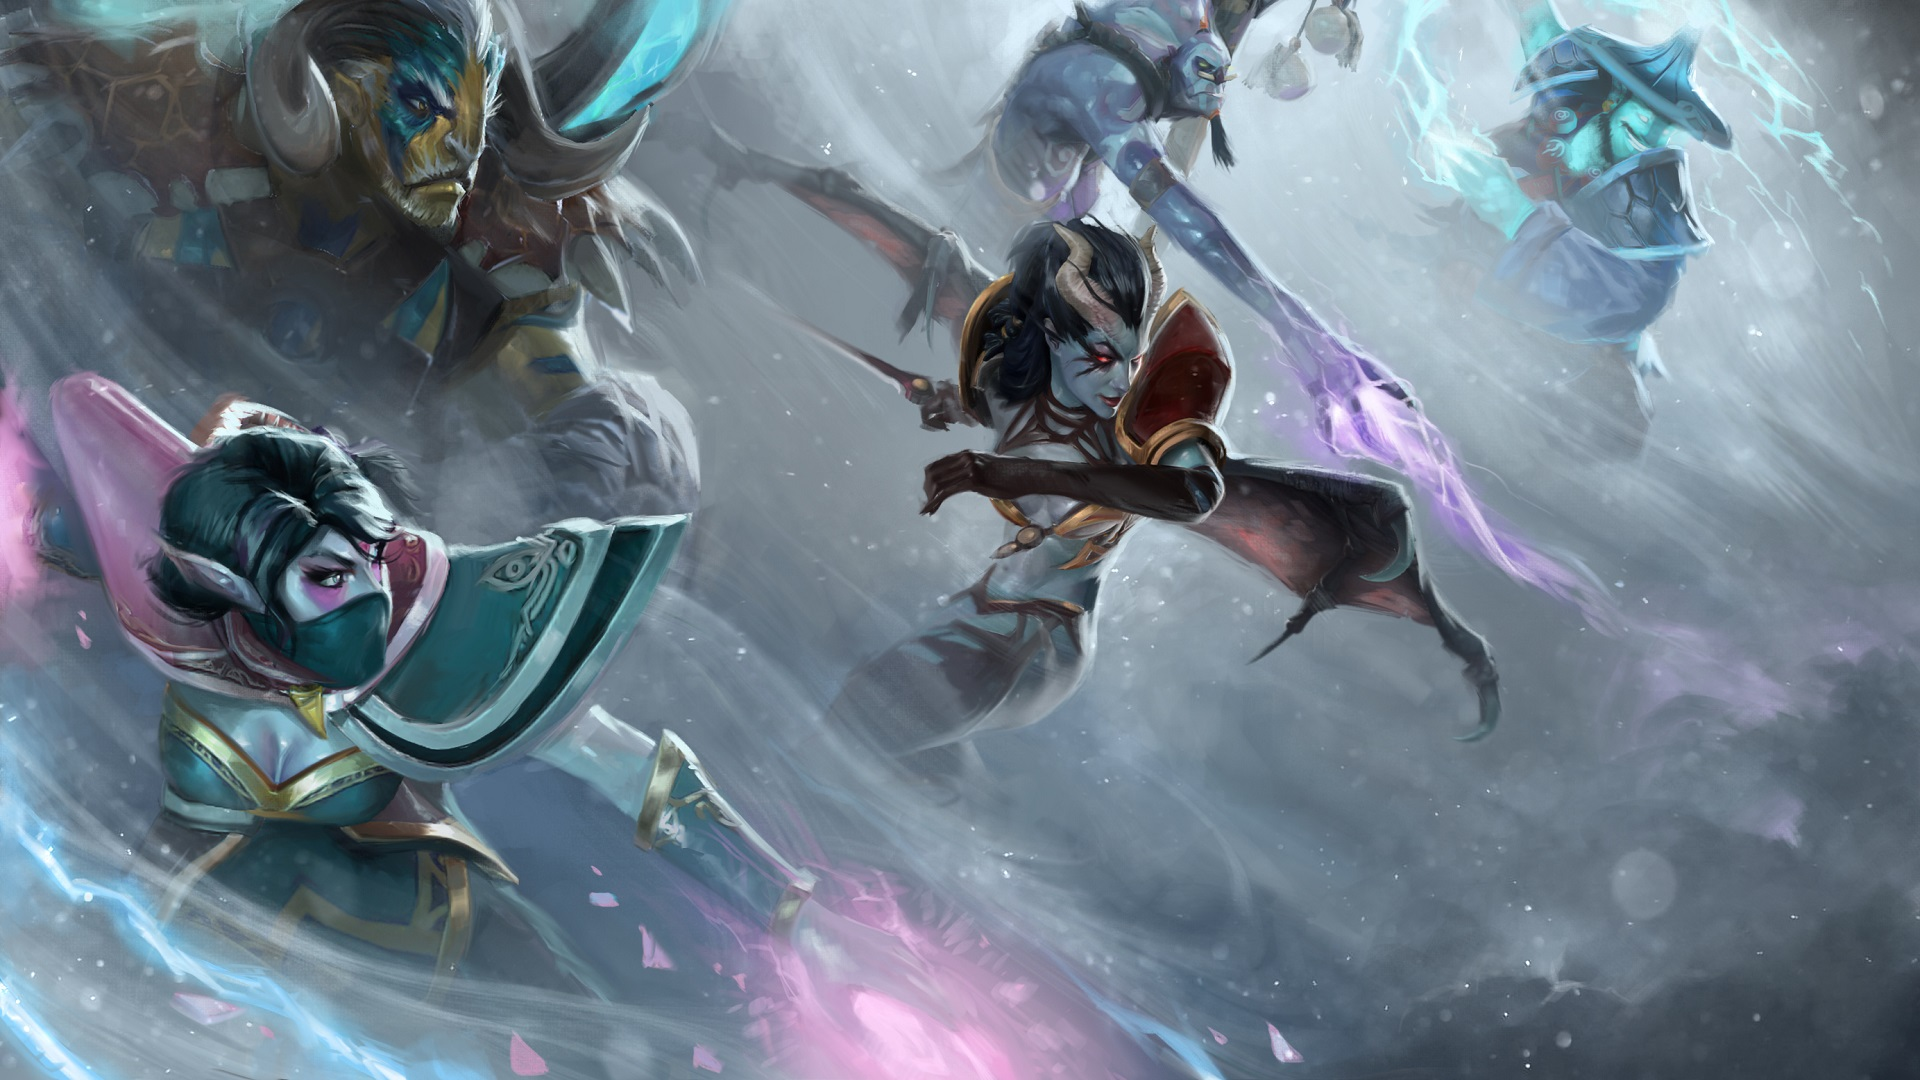 3d desktop wallpaper Heroes Dota 2